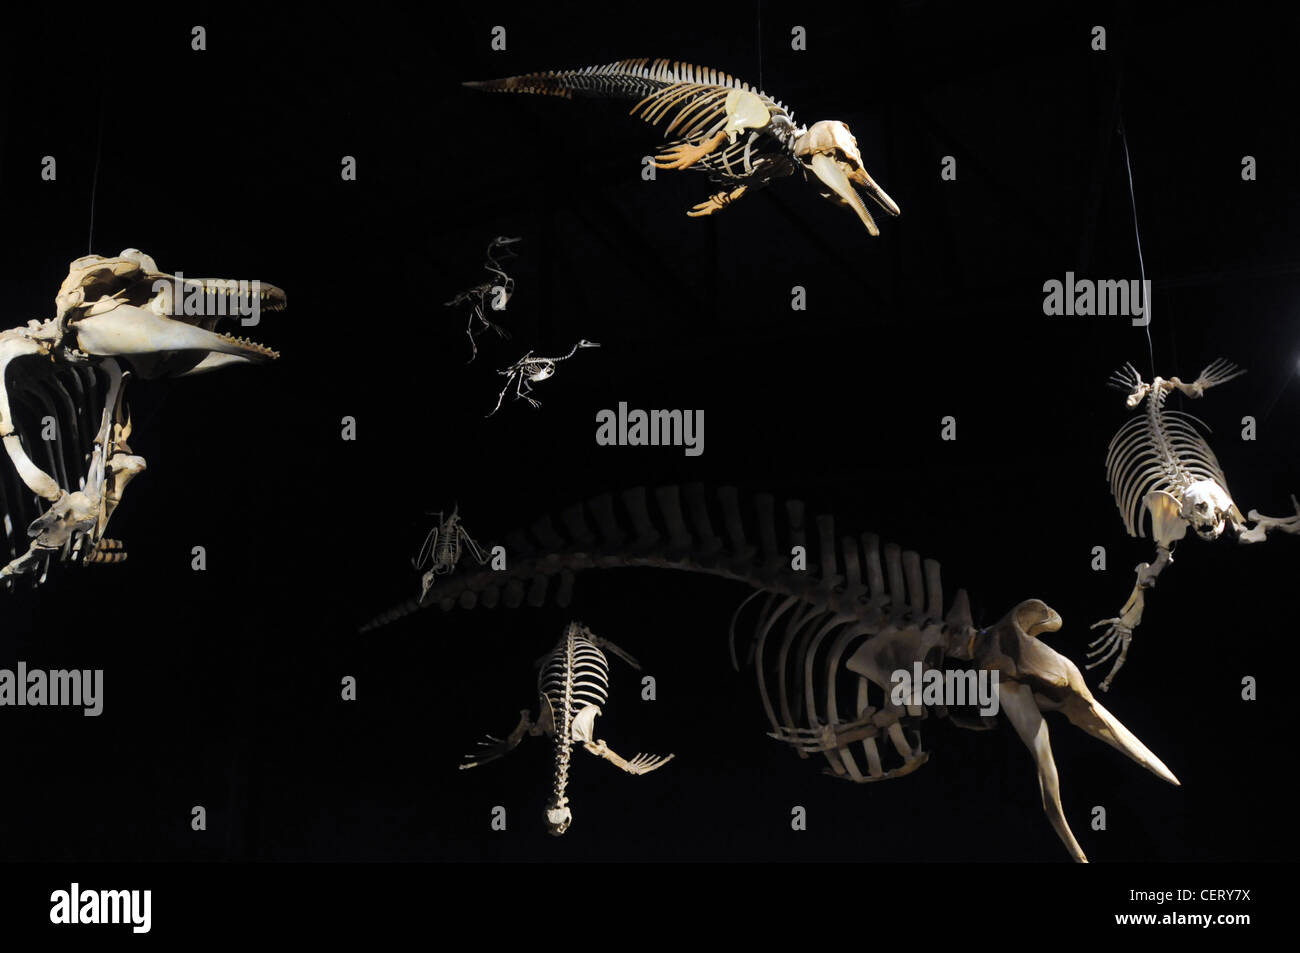 Fossil skeletons of extinct marine reptiles, mammals and birds on display in the Museum of Paleontology Egidio Feruglio, - Stock Image